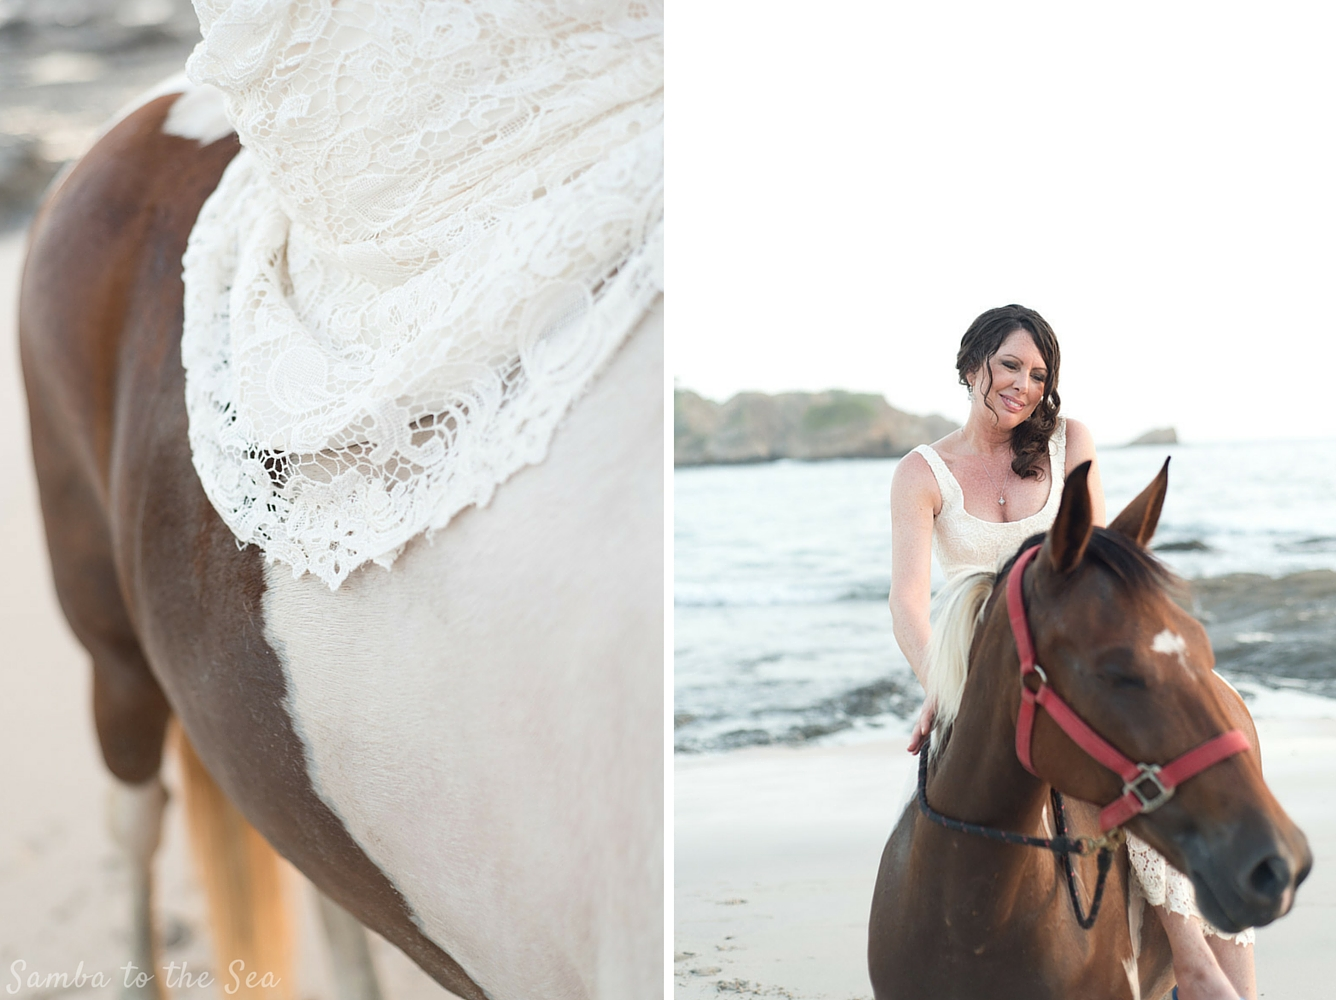 Bride sitting on horse after wedding in Nosara, Costa Rica. Photographed by Kristen M. Brown, Samba to the Sea Photography.